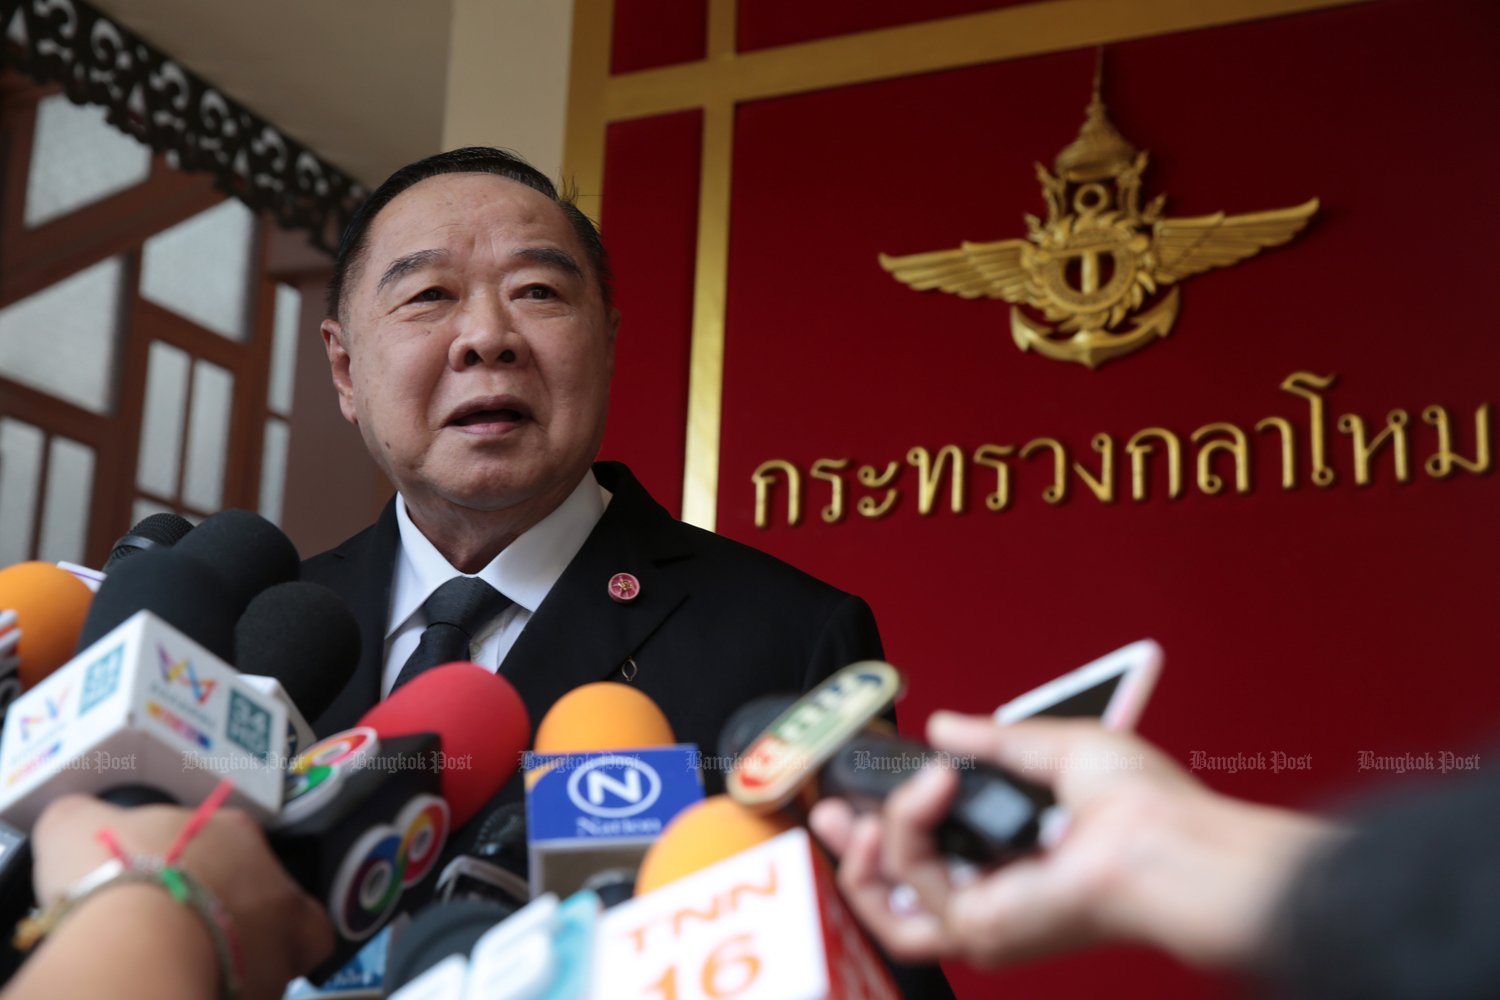 Deputy Prime Minister Prawit Wongsuwon eyes a crackdown on fake news. (Photo by Chanat Katanyu)